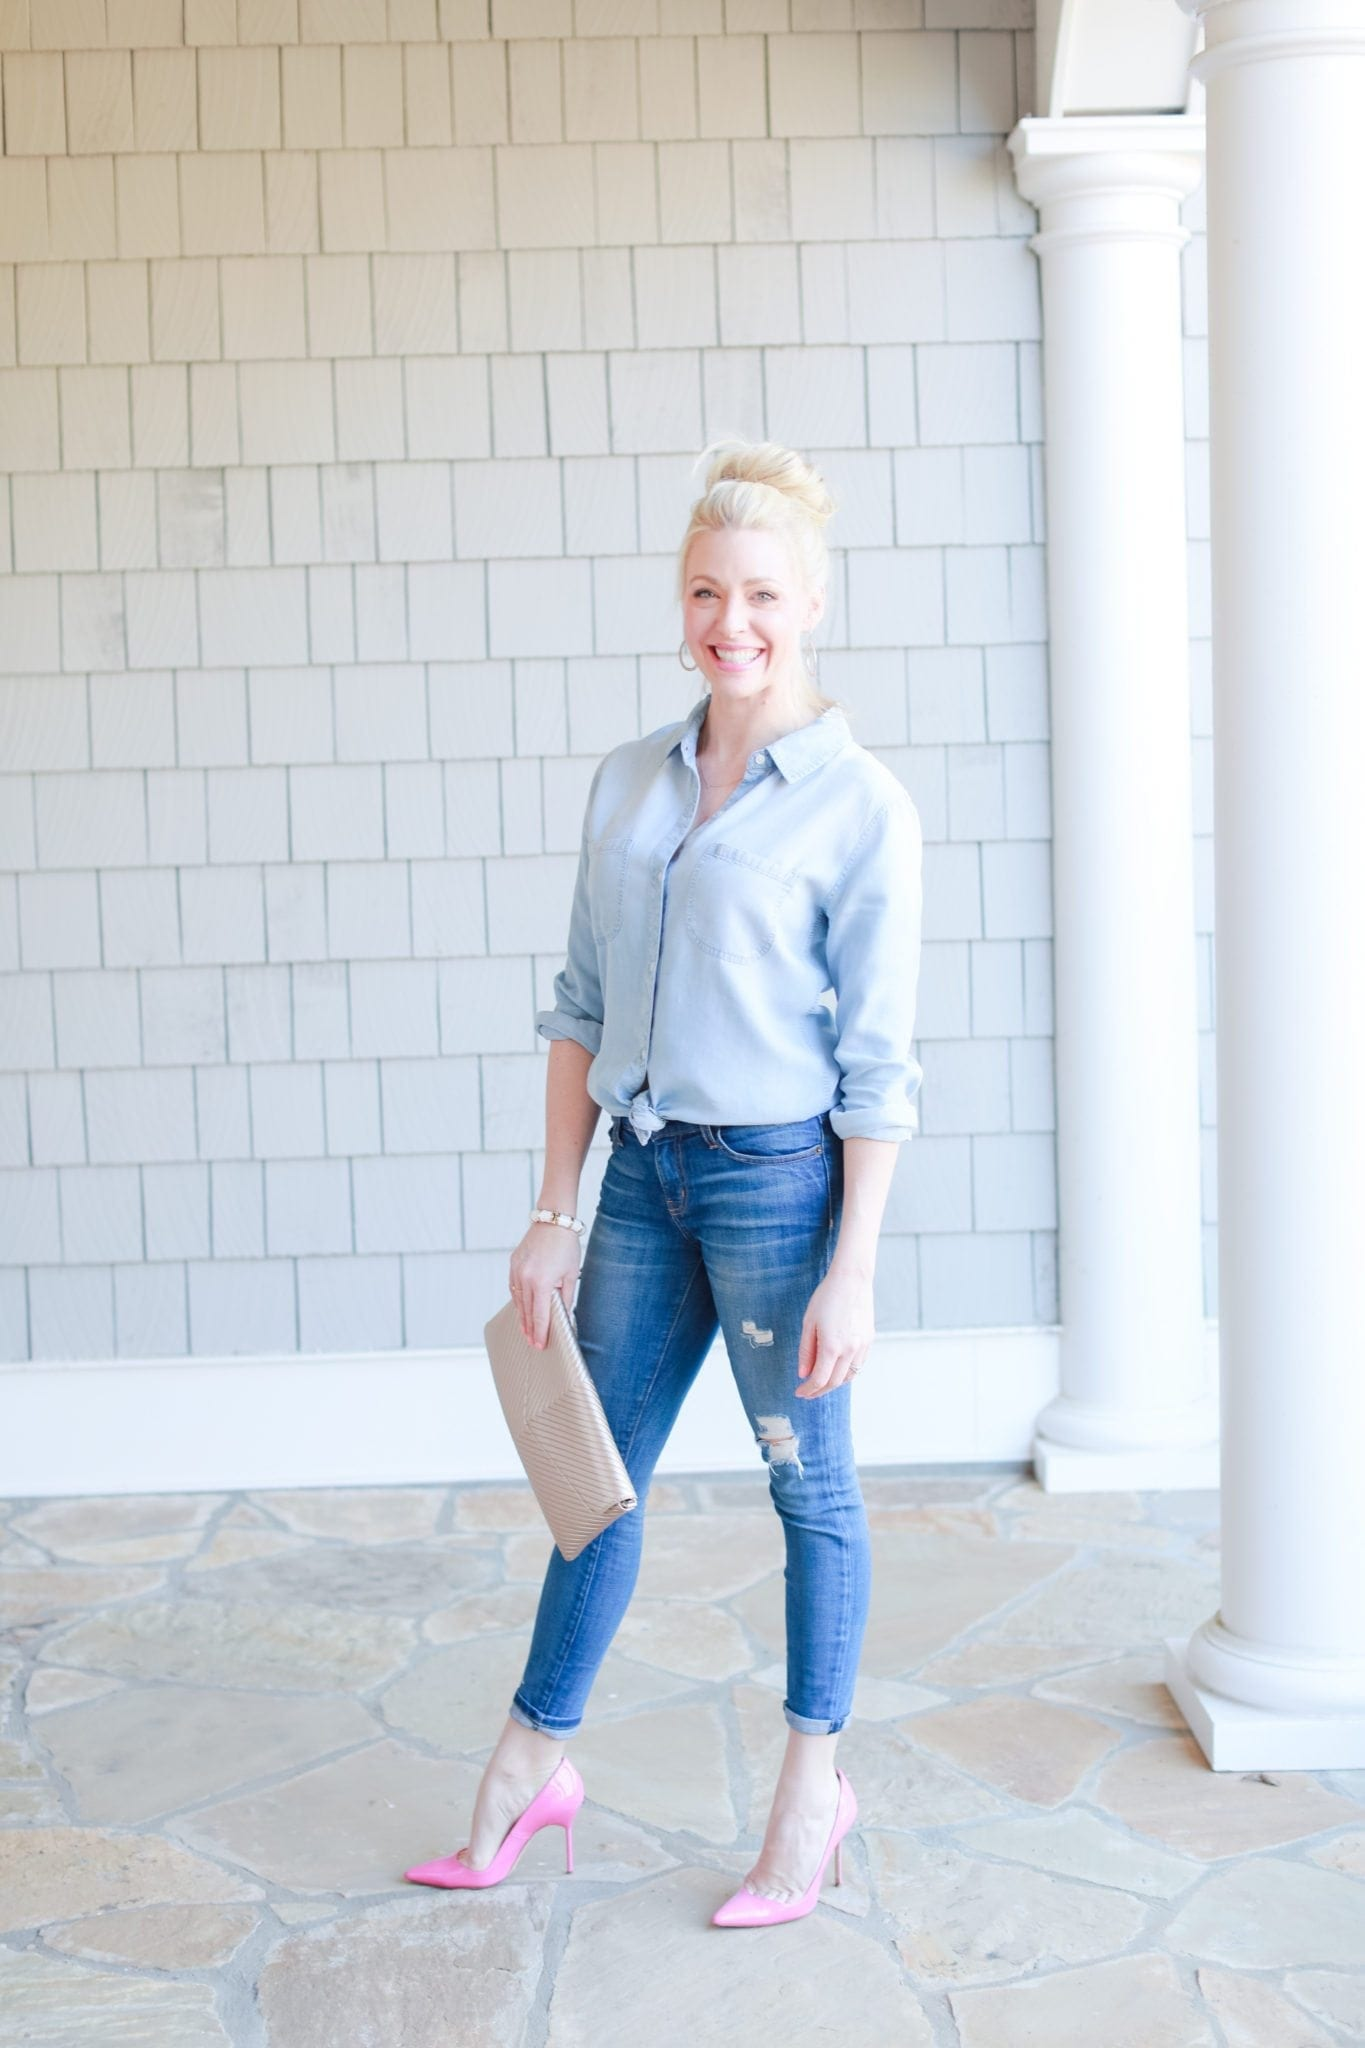 Chambray shirt and ripped jeans and pink high heals.